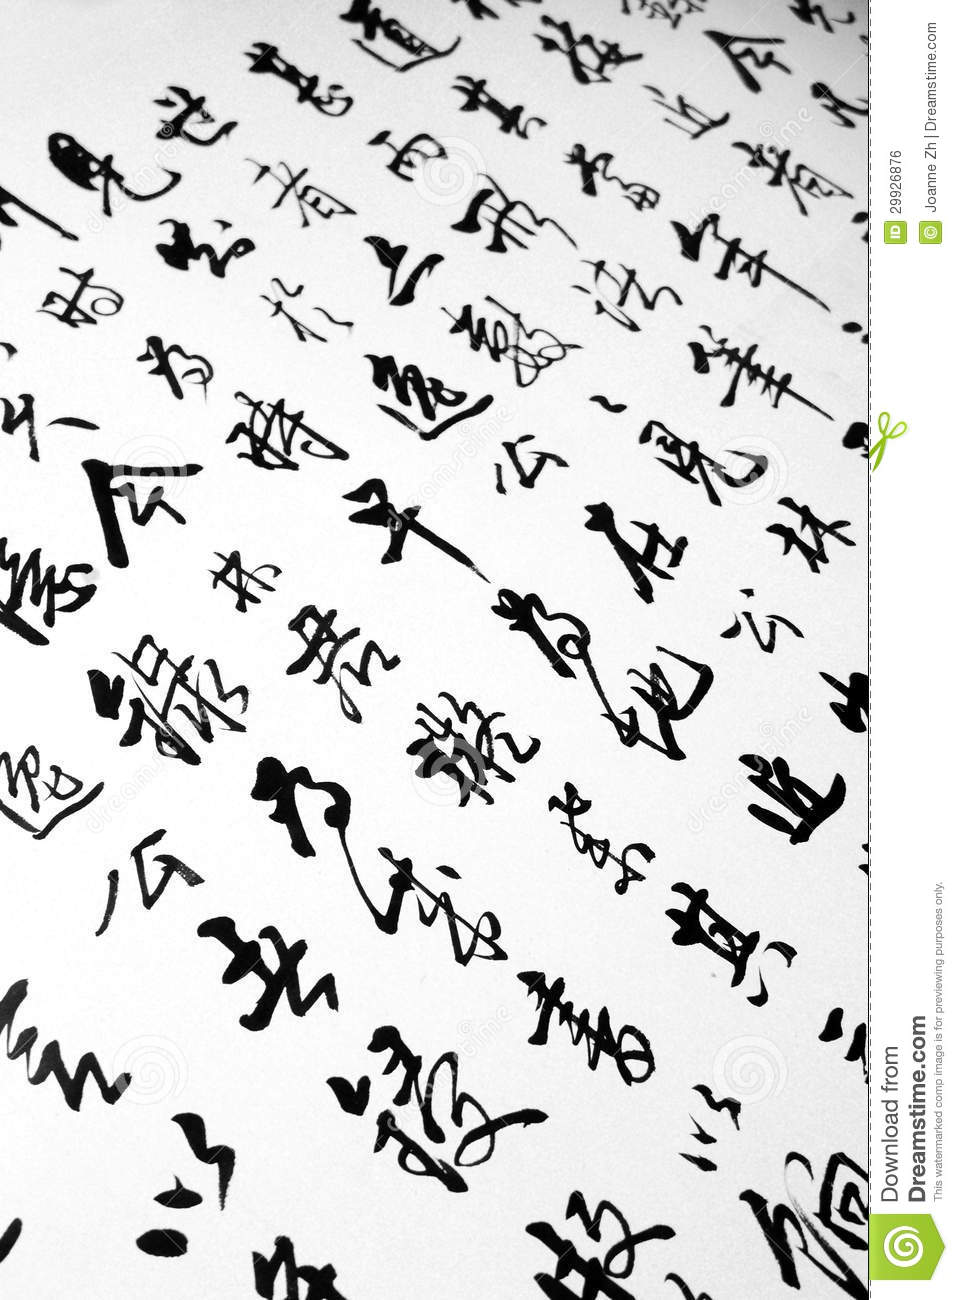 Chinese Calligraphy The Flowing Style Stock Photo